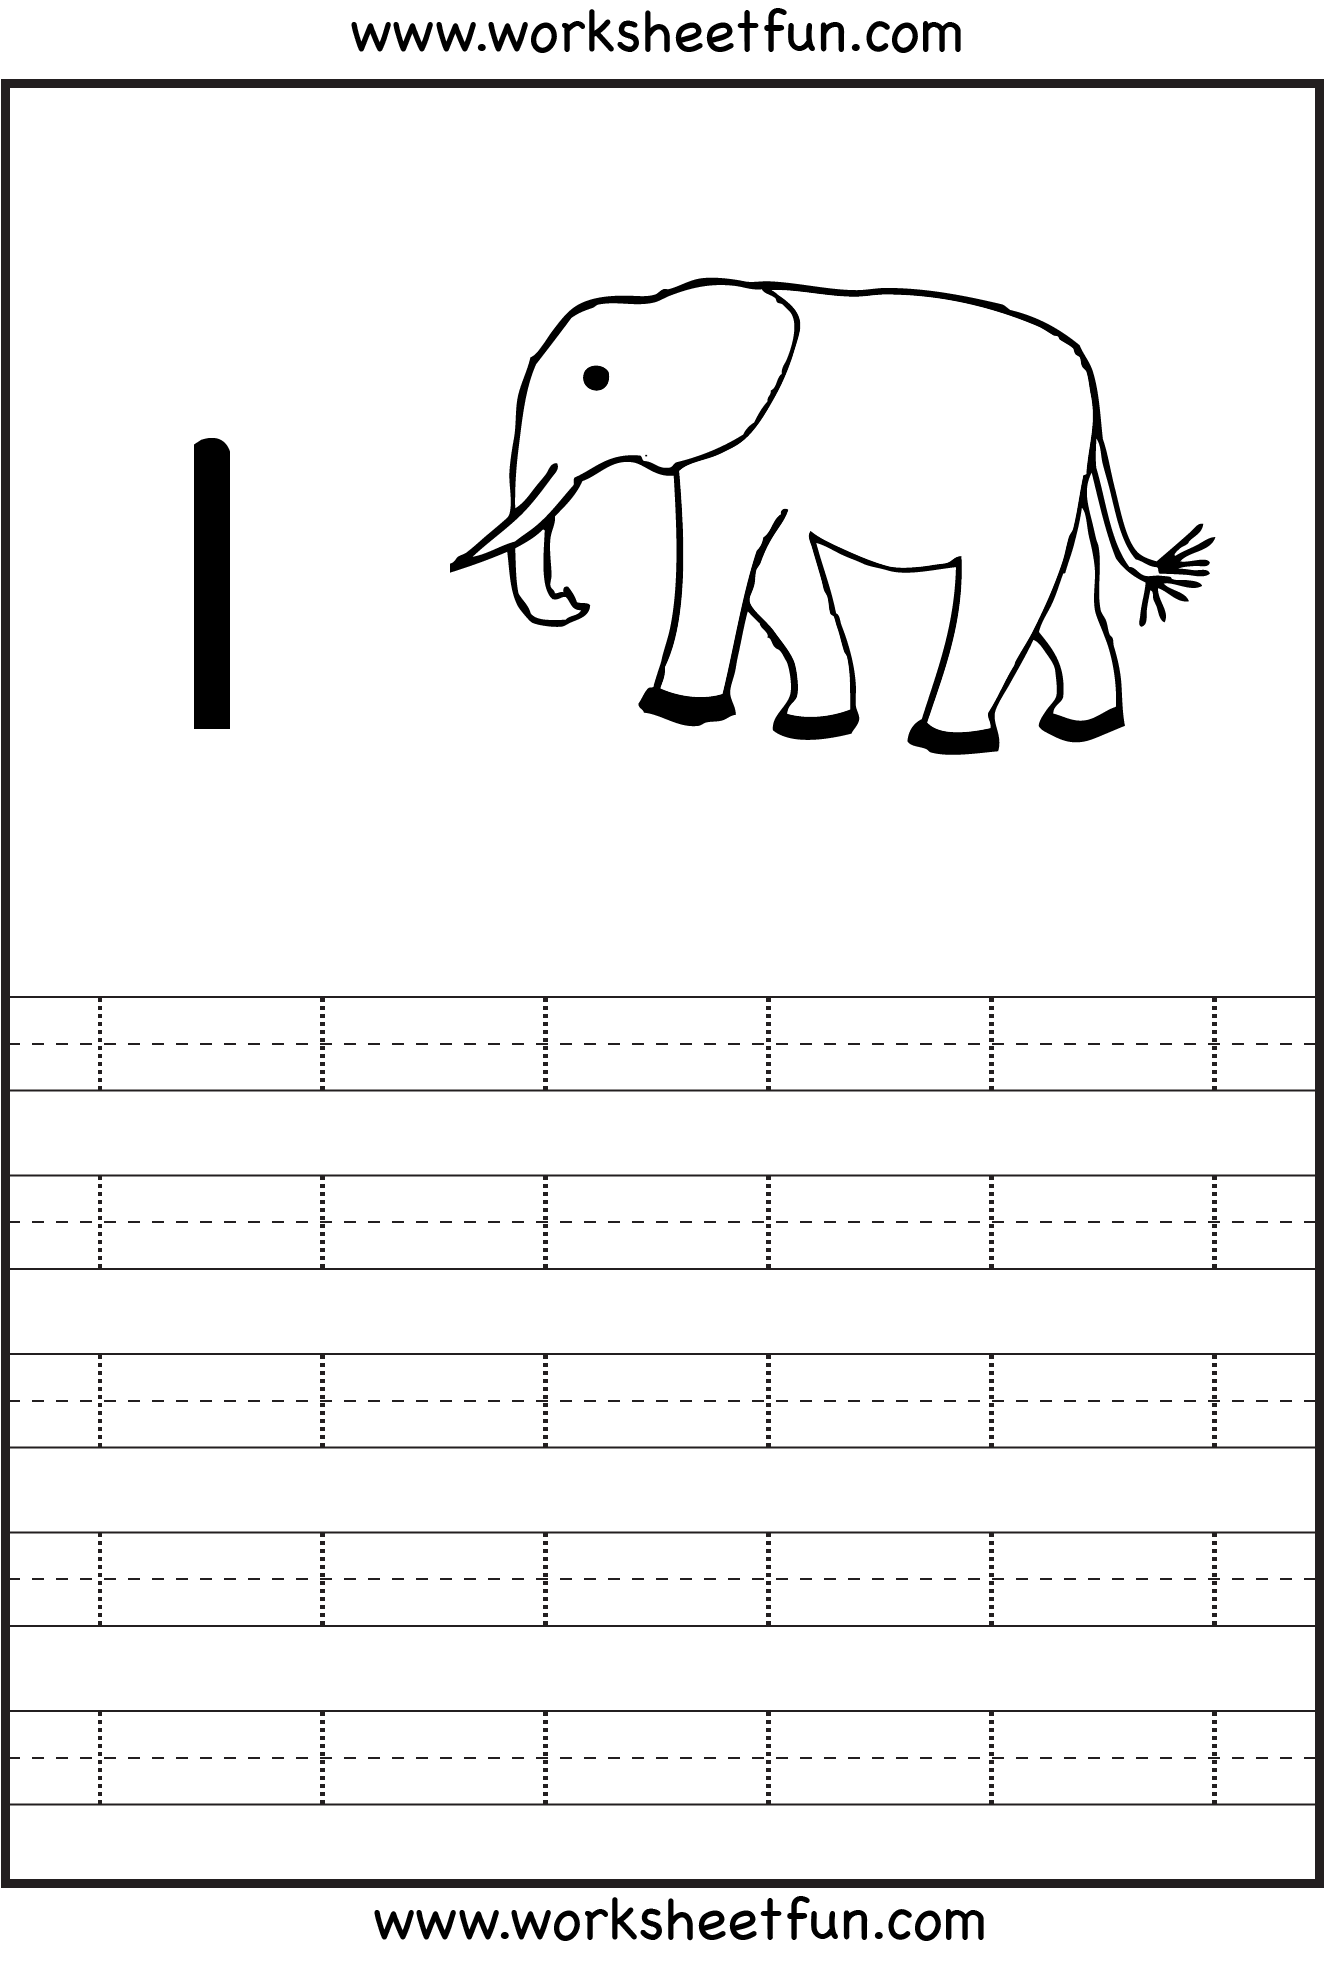 Worksheet Free Printable Number Worksheets 1-10 free printable number tracing worksheets for preschoolers worksheet tracer kids activity shelter worksheet